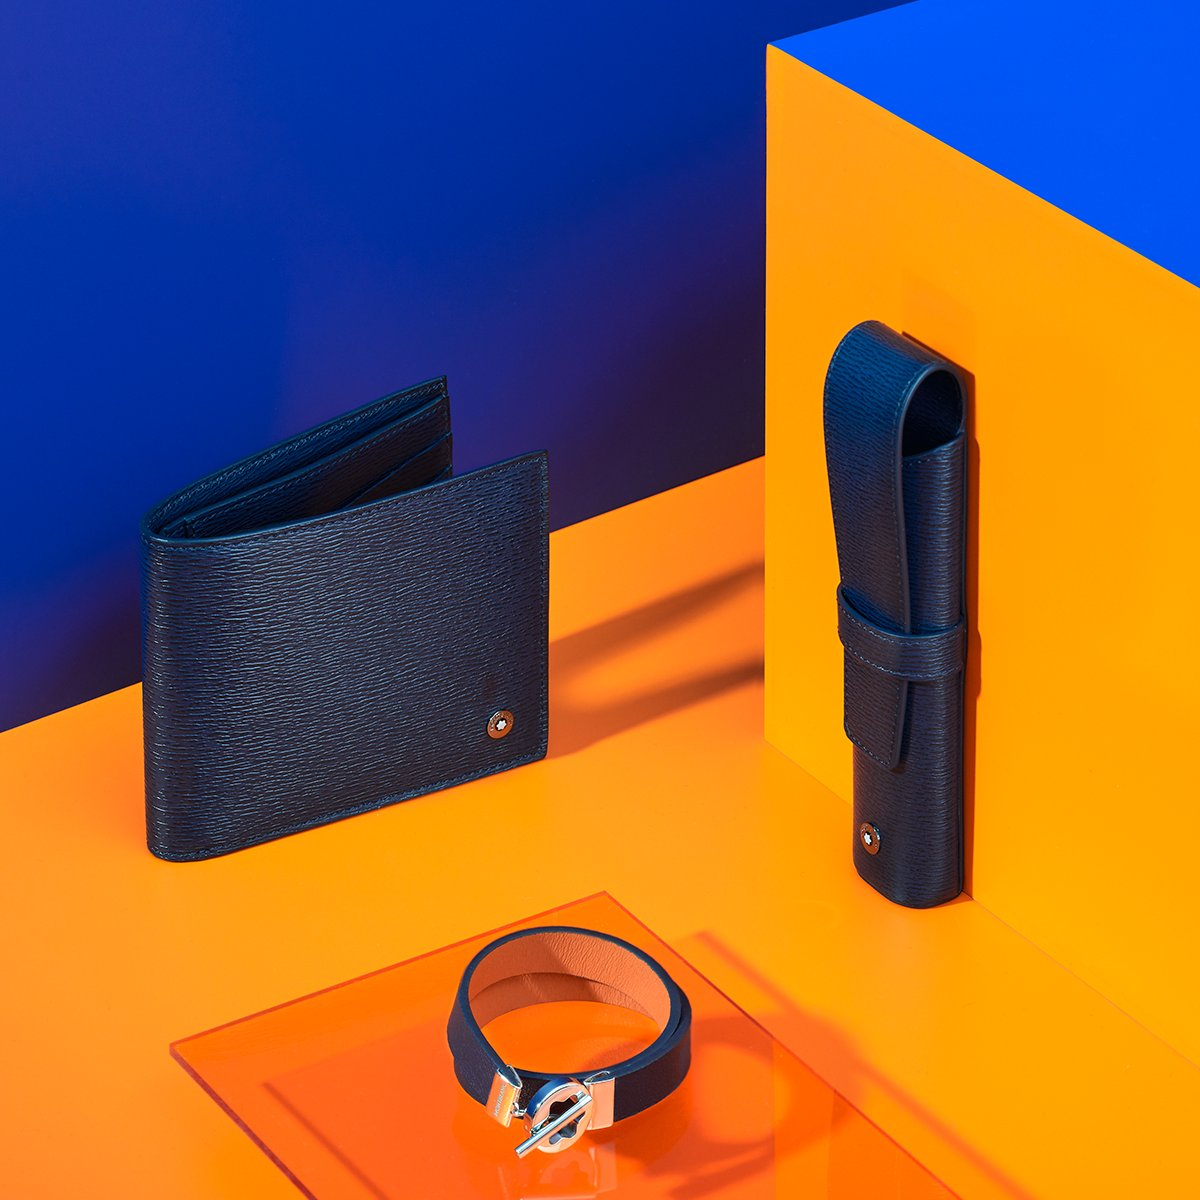 """""""There is no #blue without yellow and without orange."""" - Vincent Van Gogh  Create and enjoy the complementary contrasts of life's colours with the #4810 Westside collection in navy blue leather."""